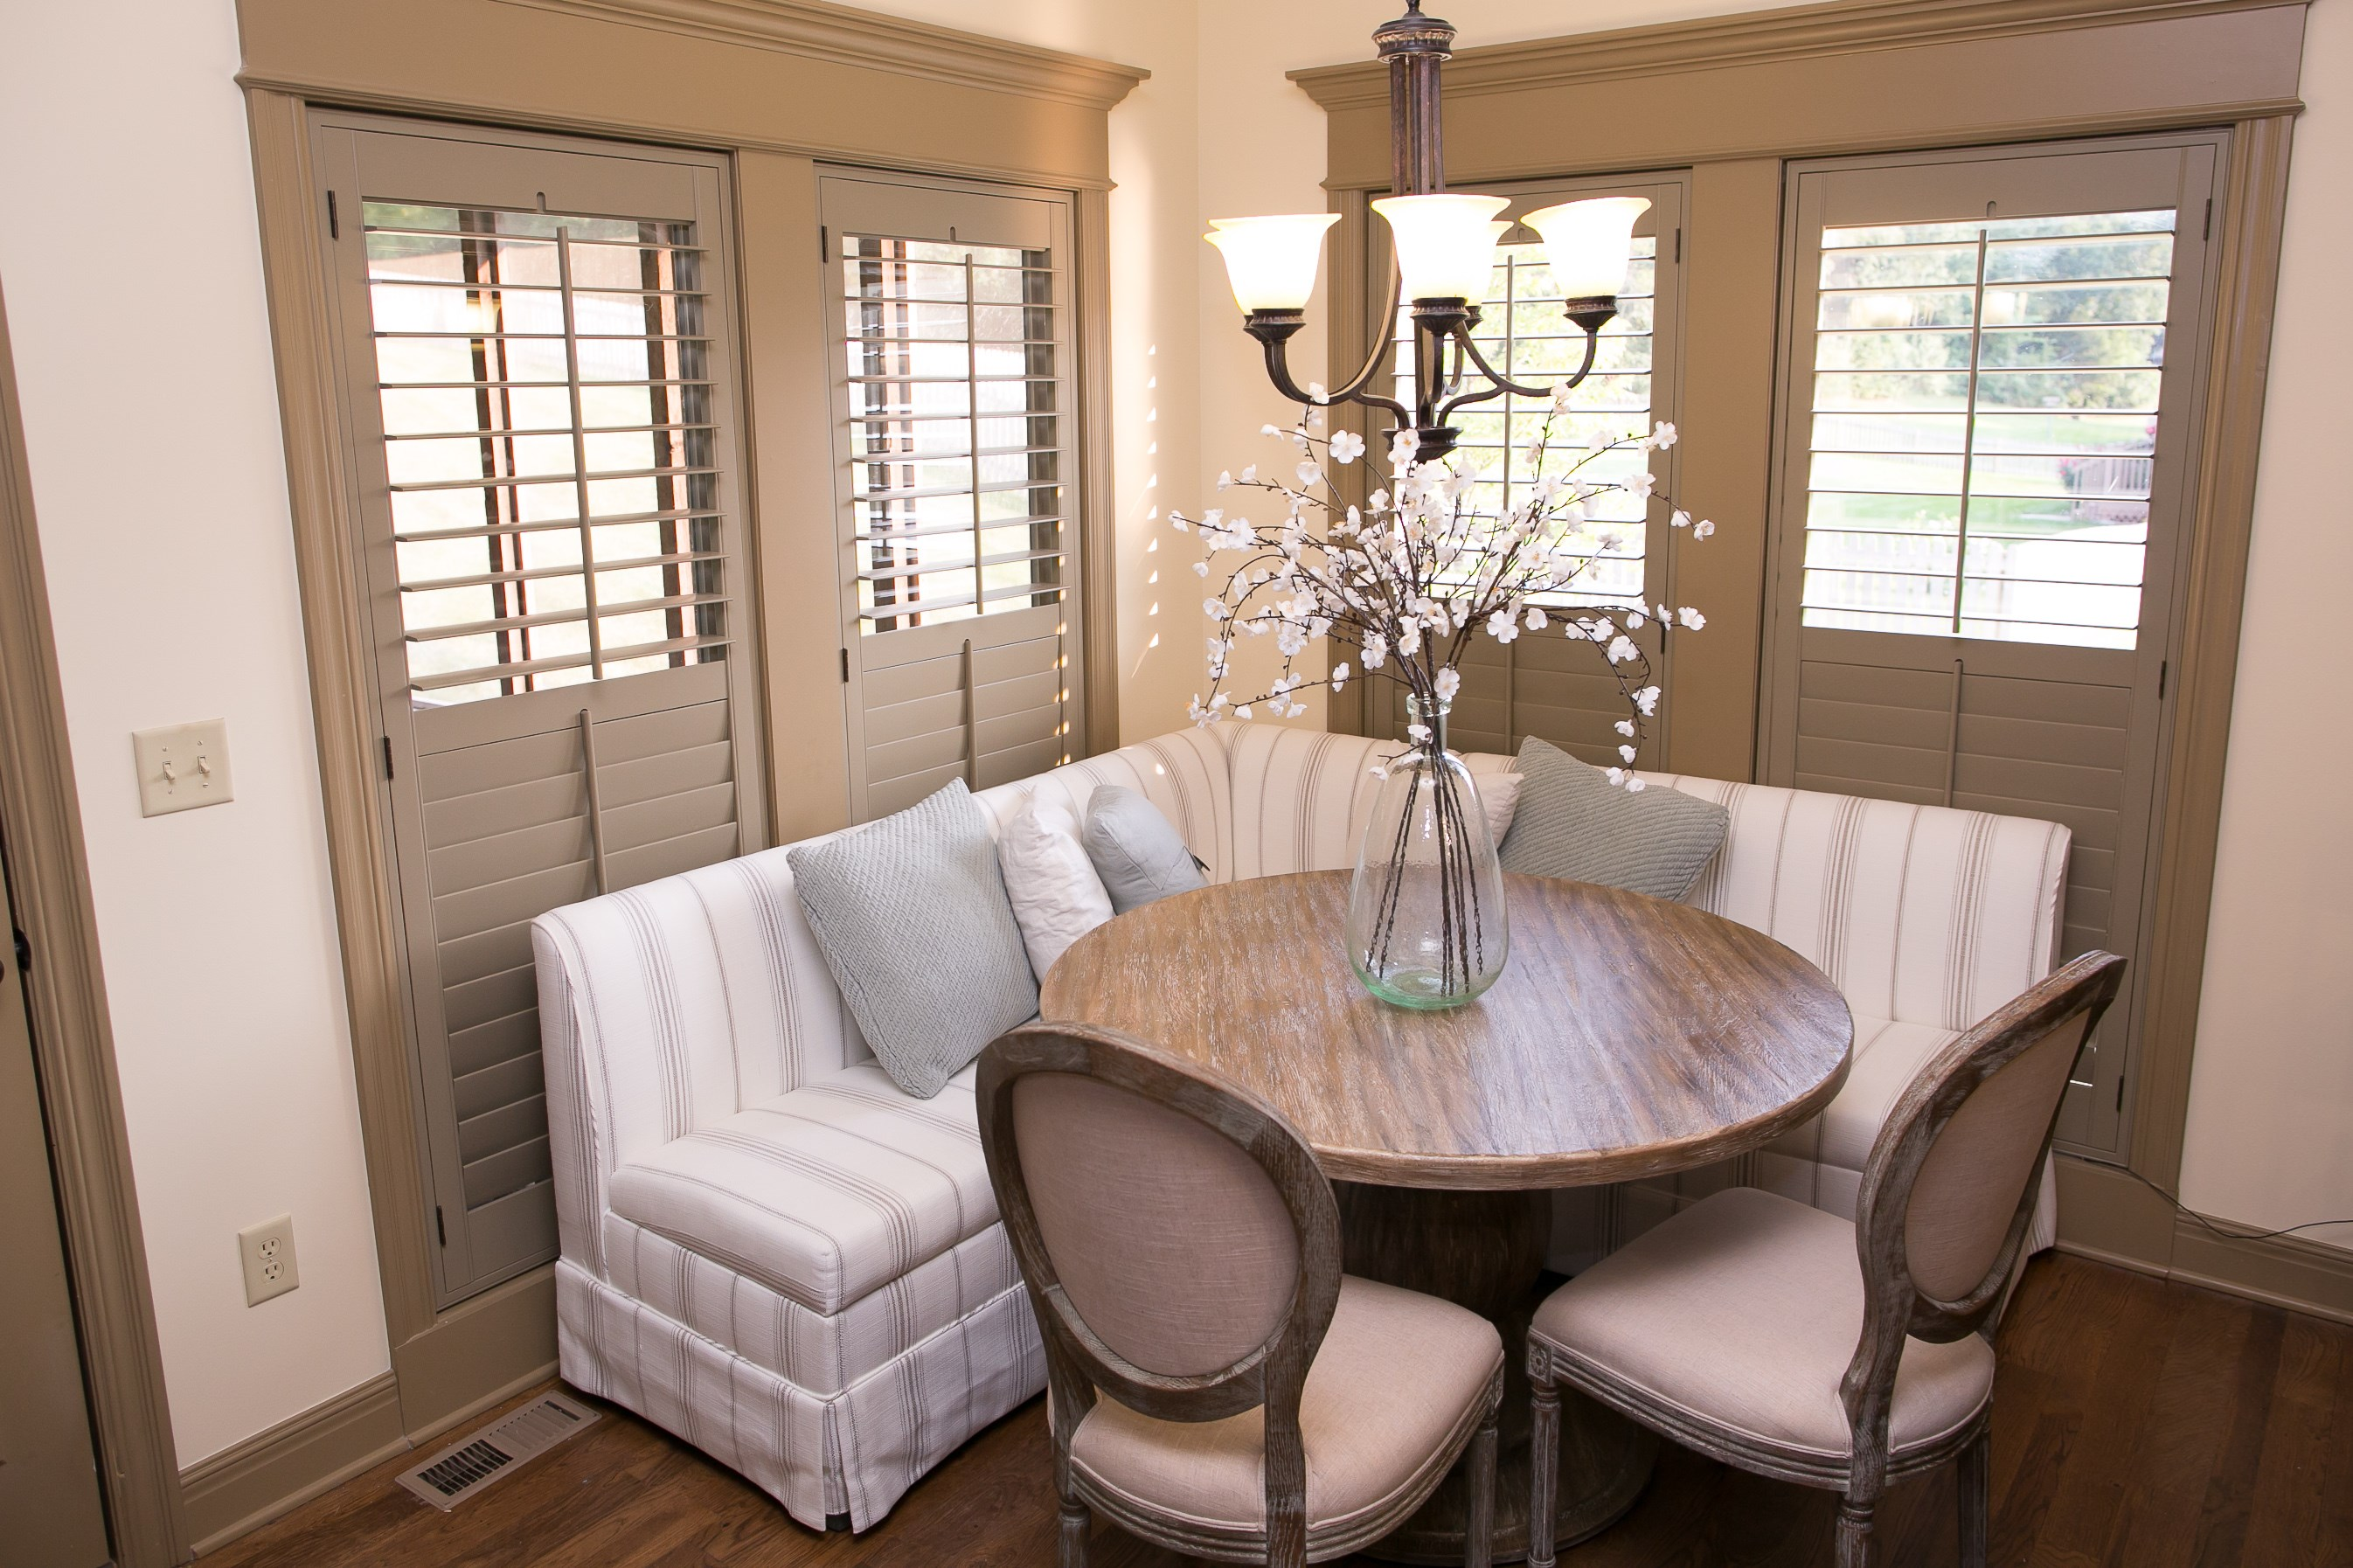 kitchen nook shutters4.jpg